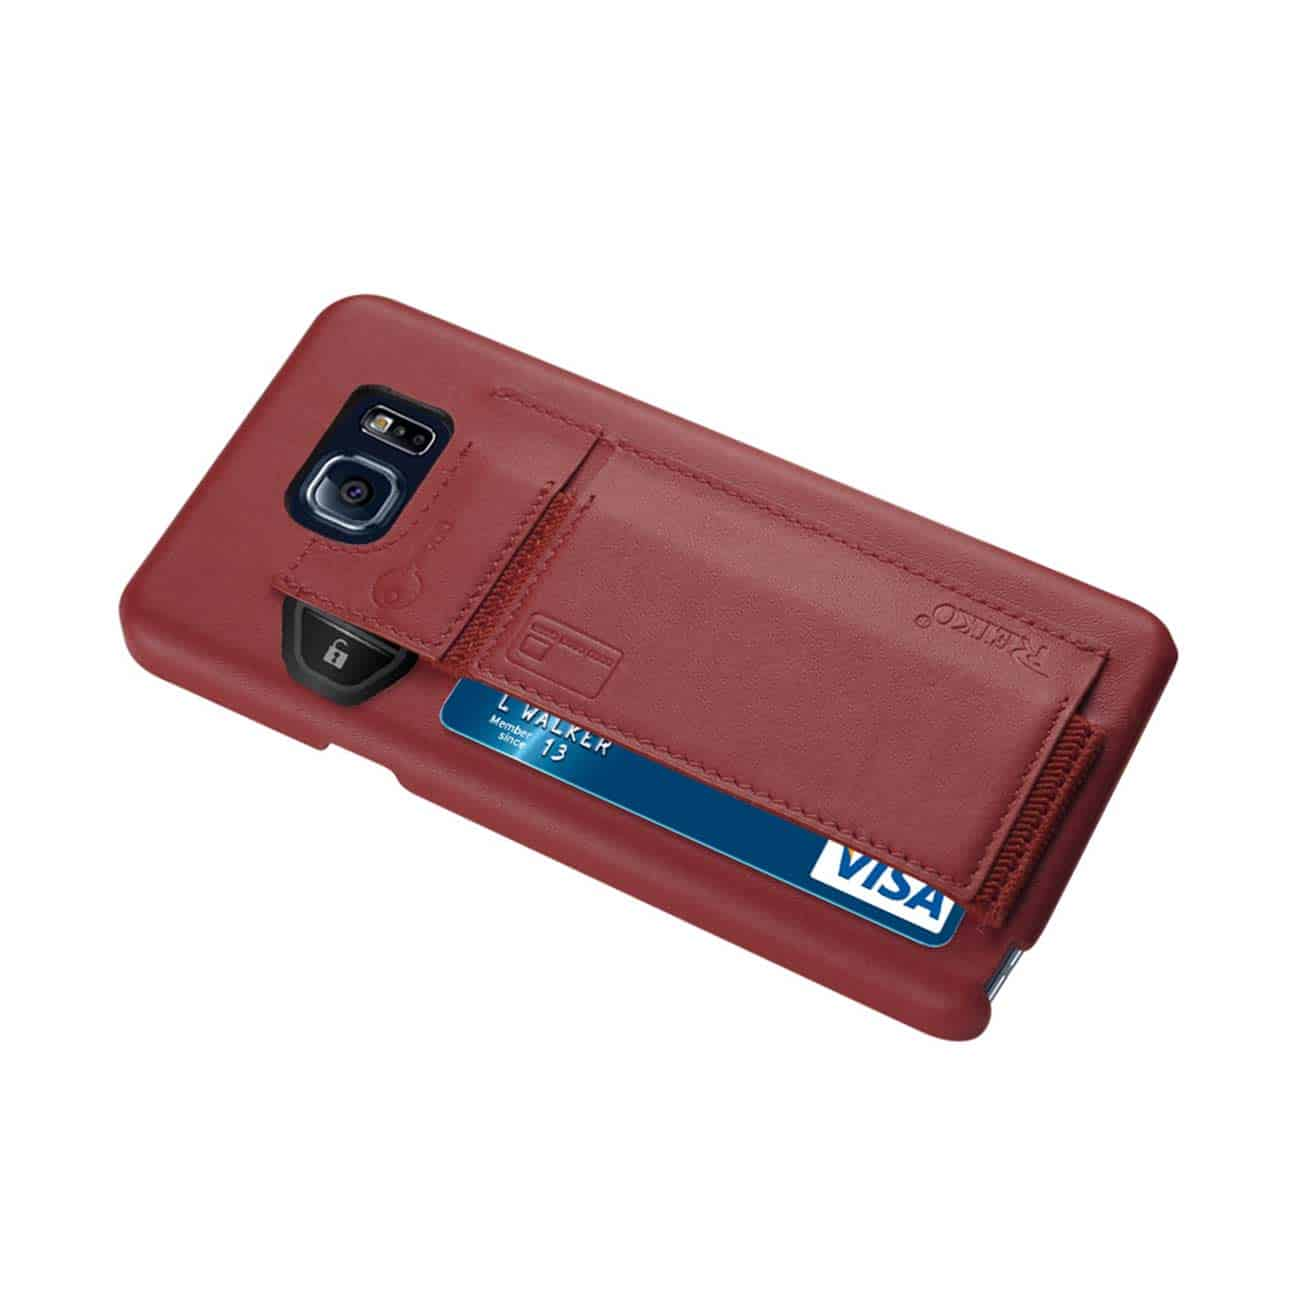 SAMSUNG GALAXY NOTE 5 RFID GENUINE LEATHER CASE PROTECTION AND KEY HOLDER IN BURGUNDY